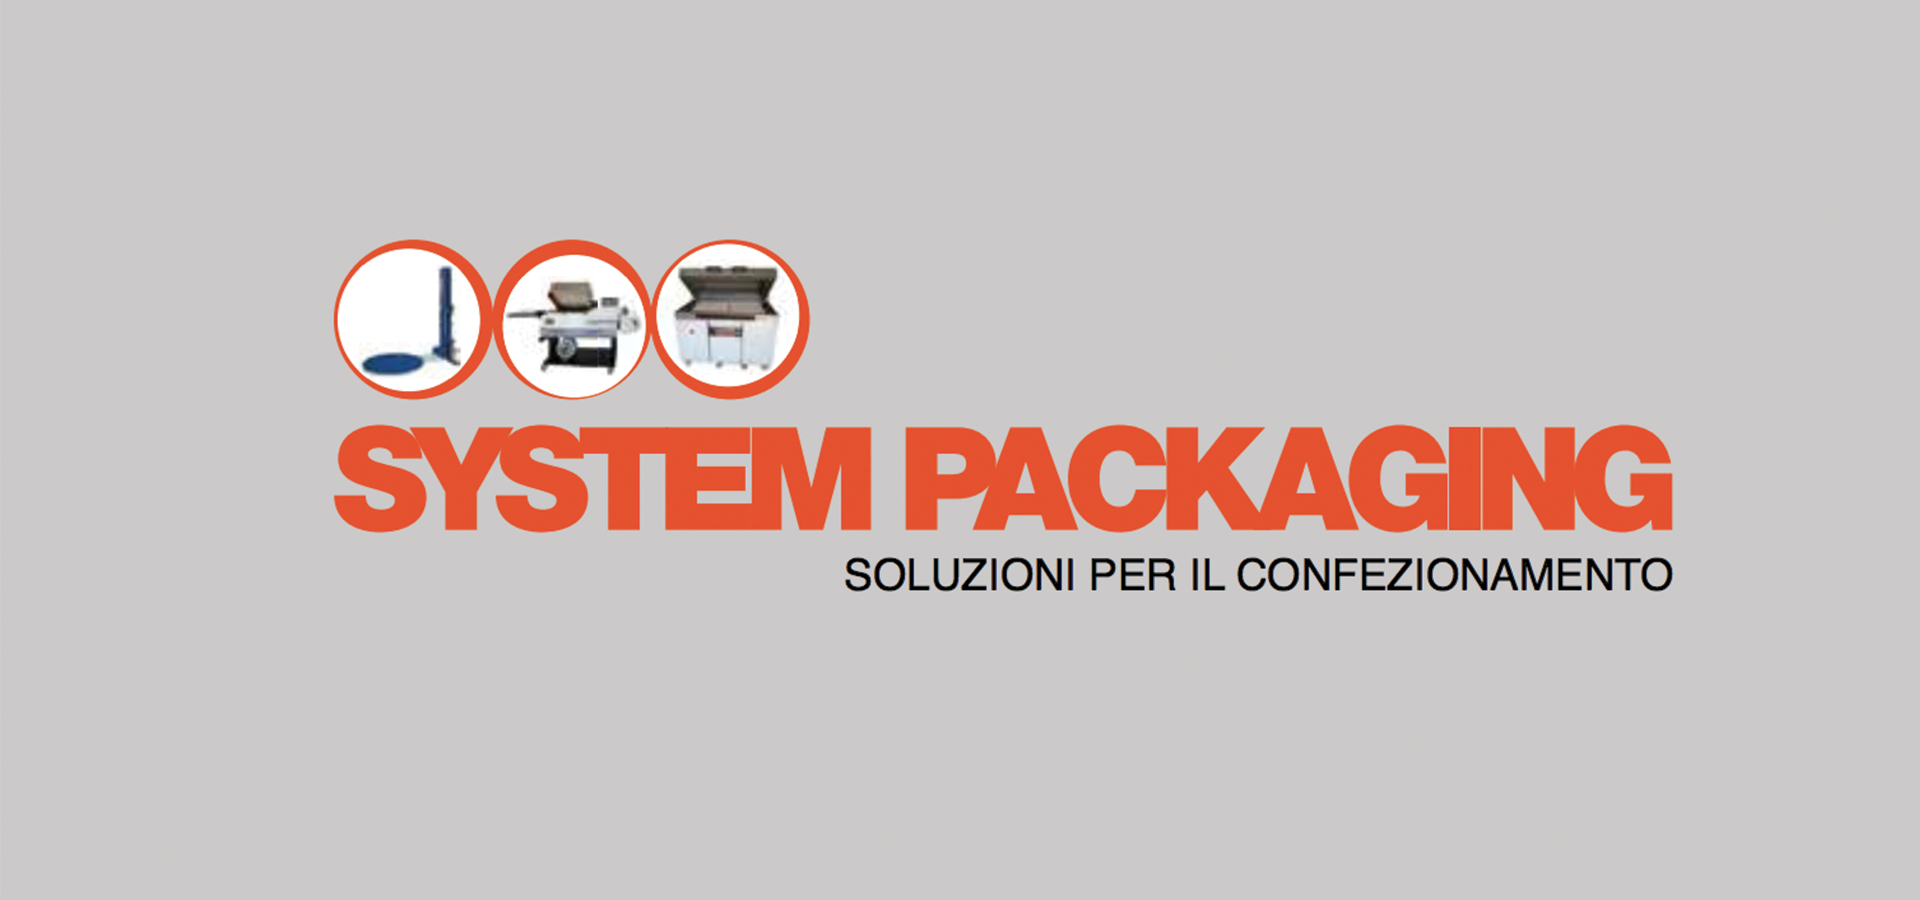 system-packaging_cprt